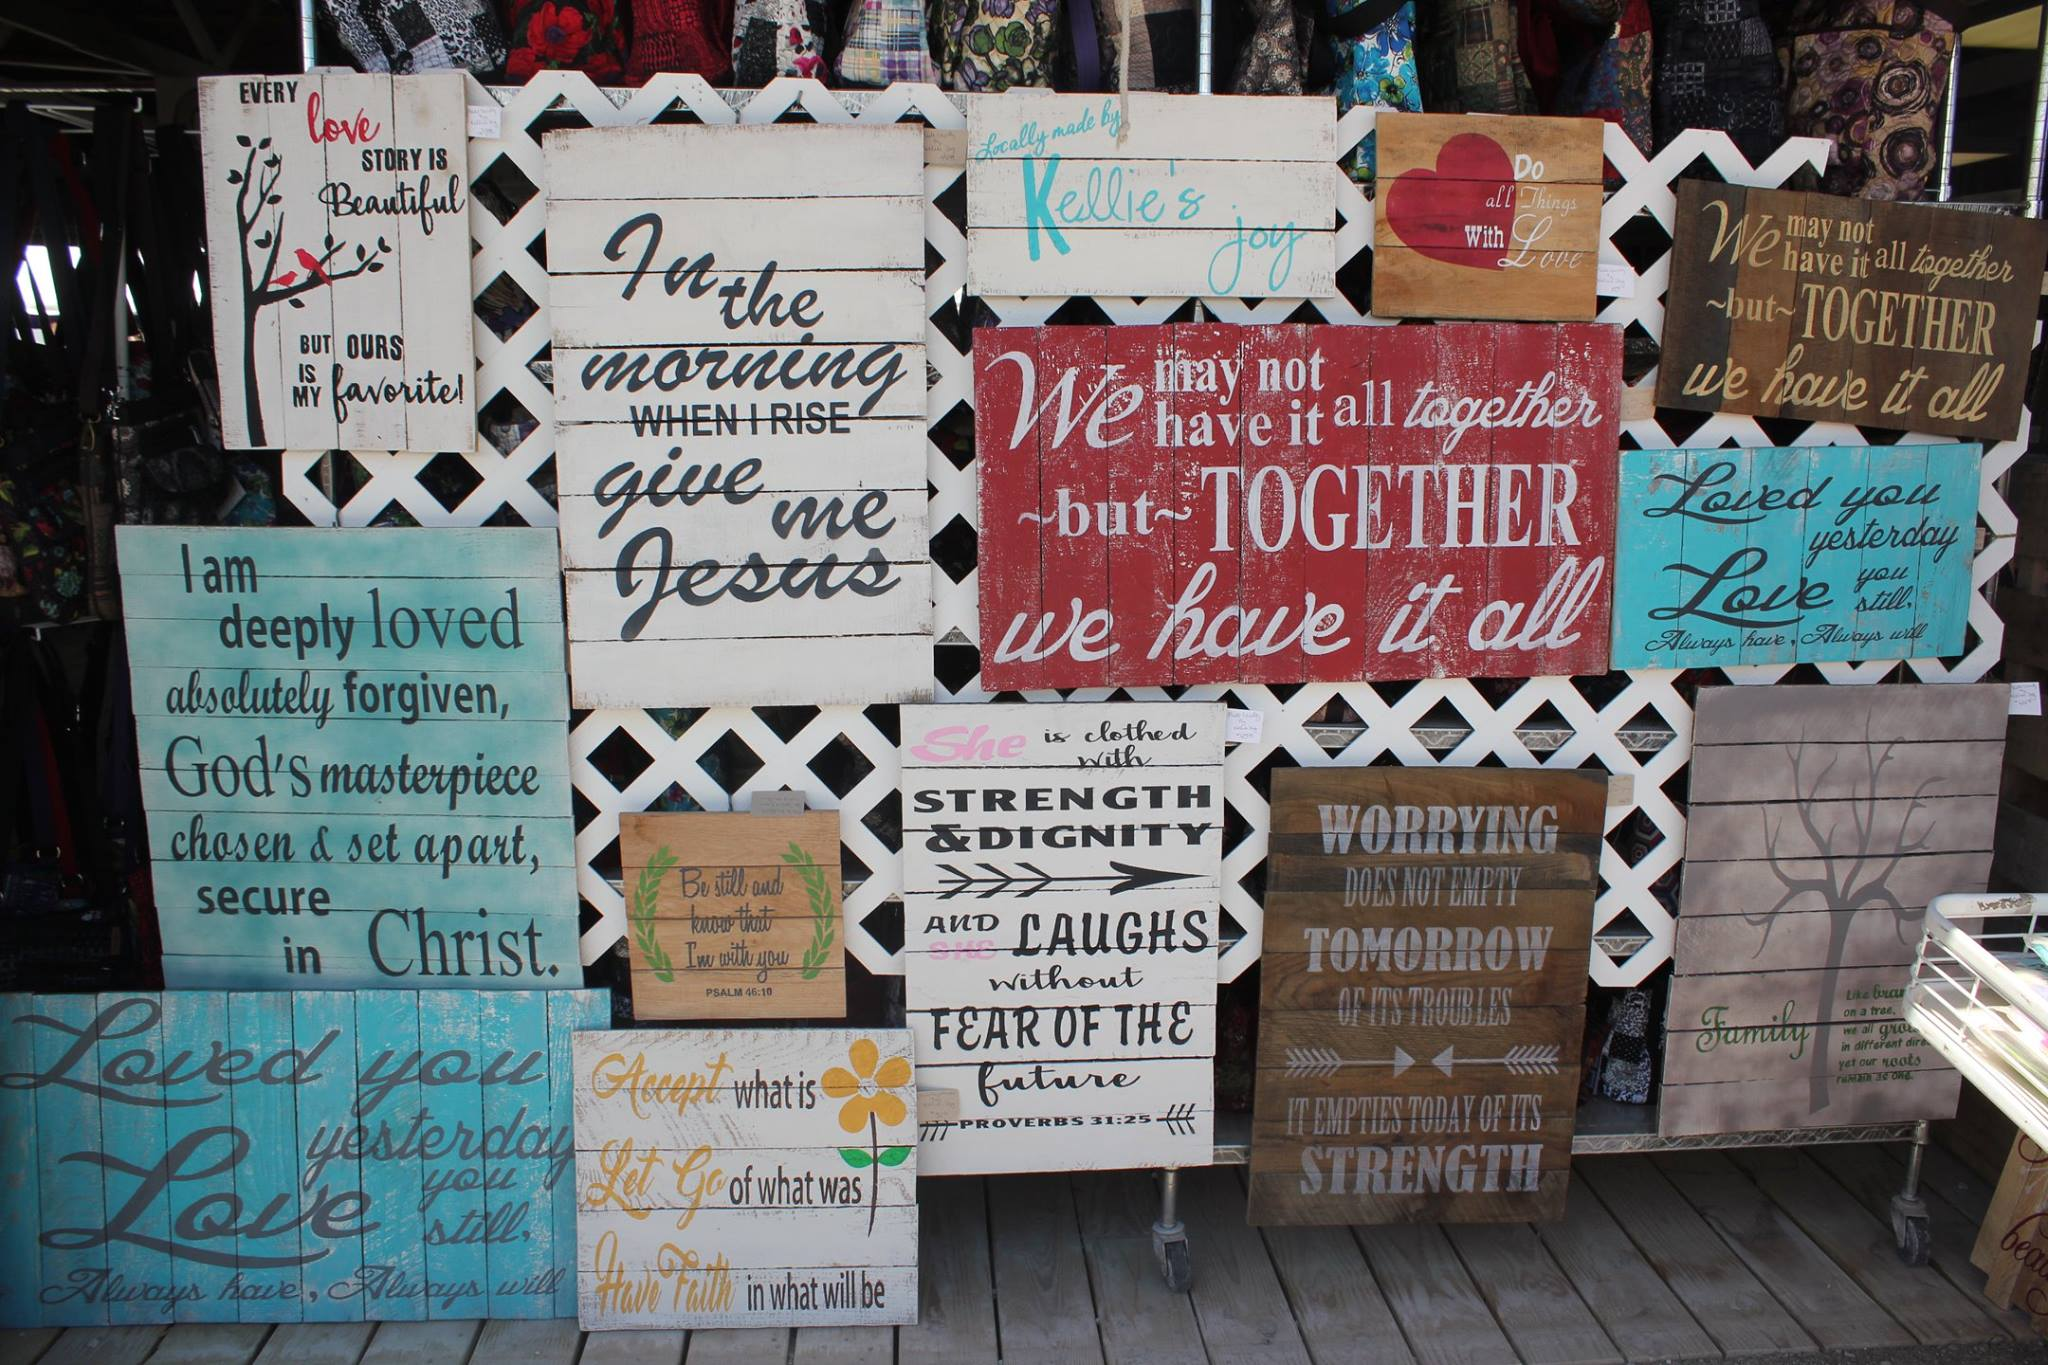 Kellie's Joy Signs at Shipshewana Flea Market painted